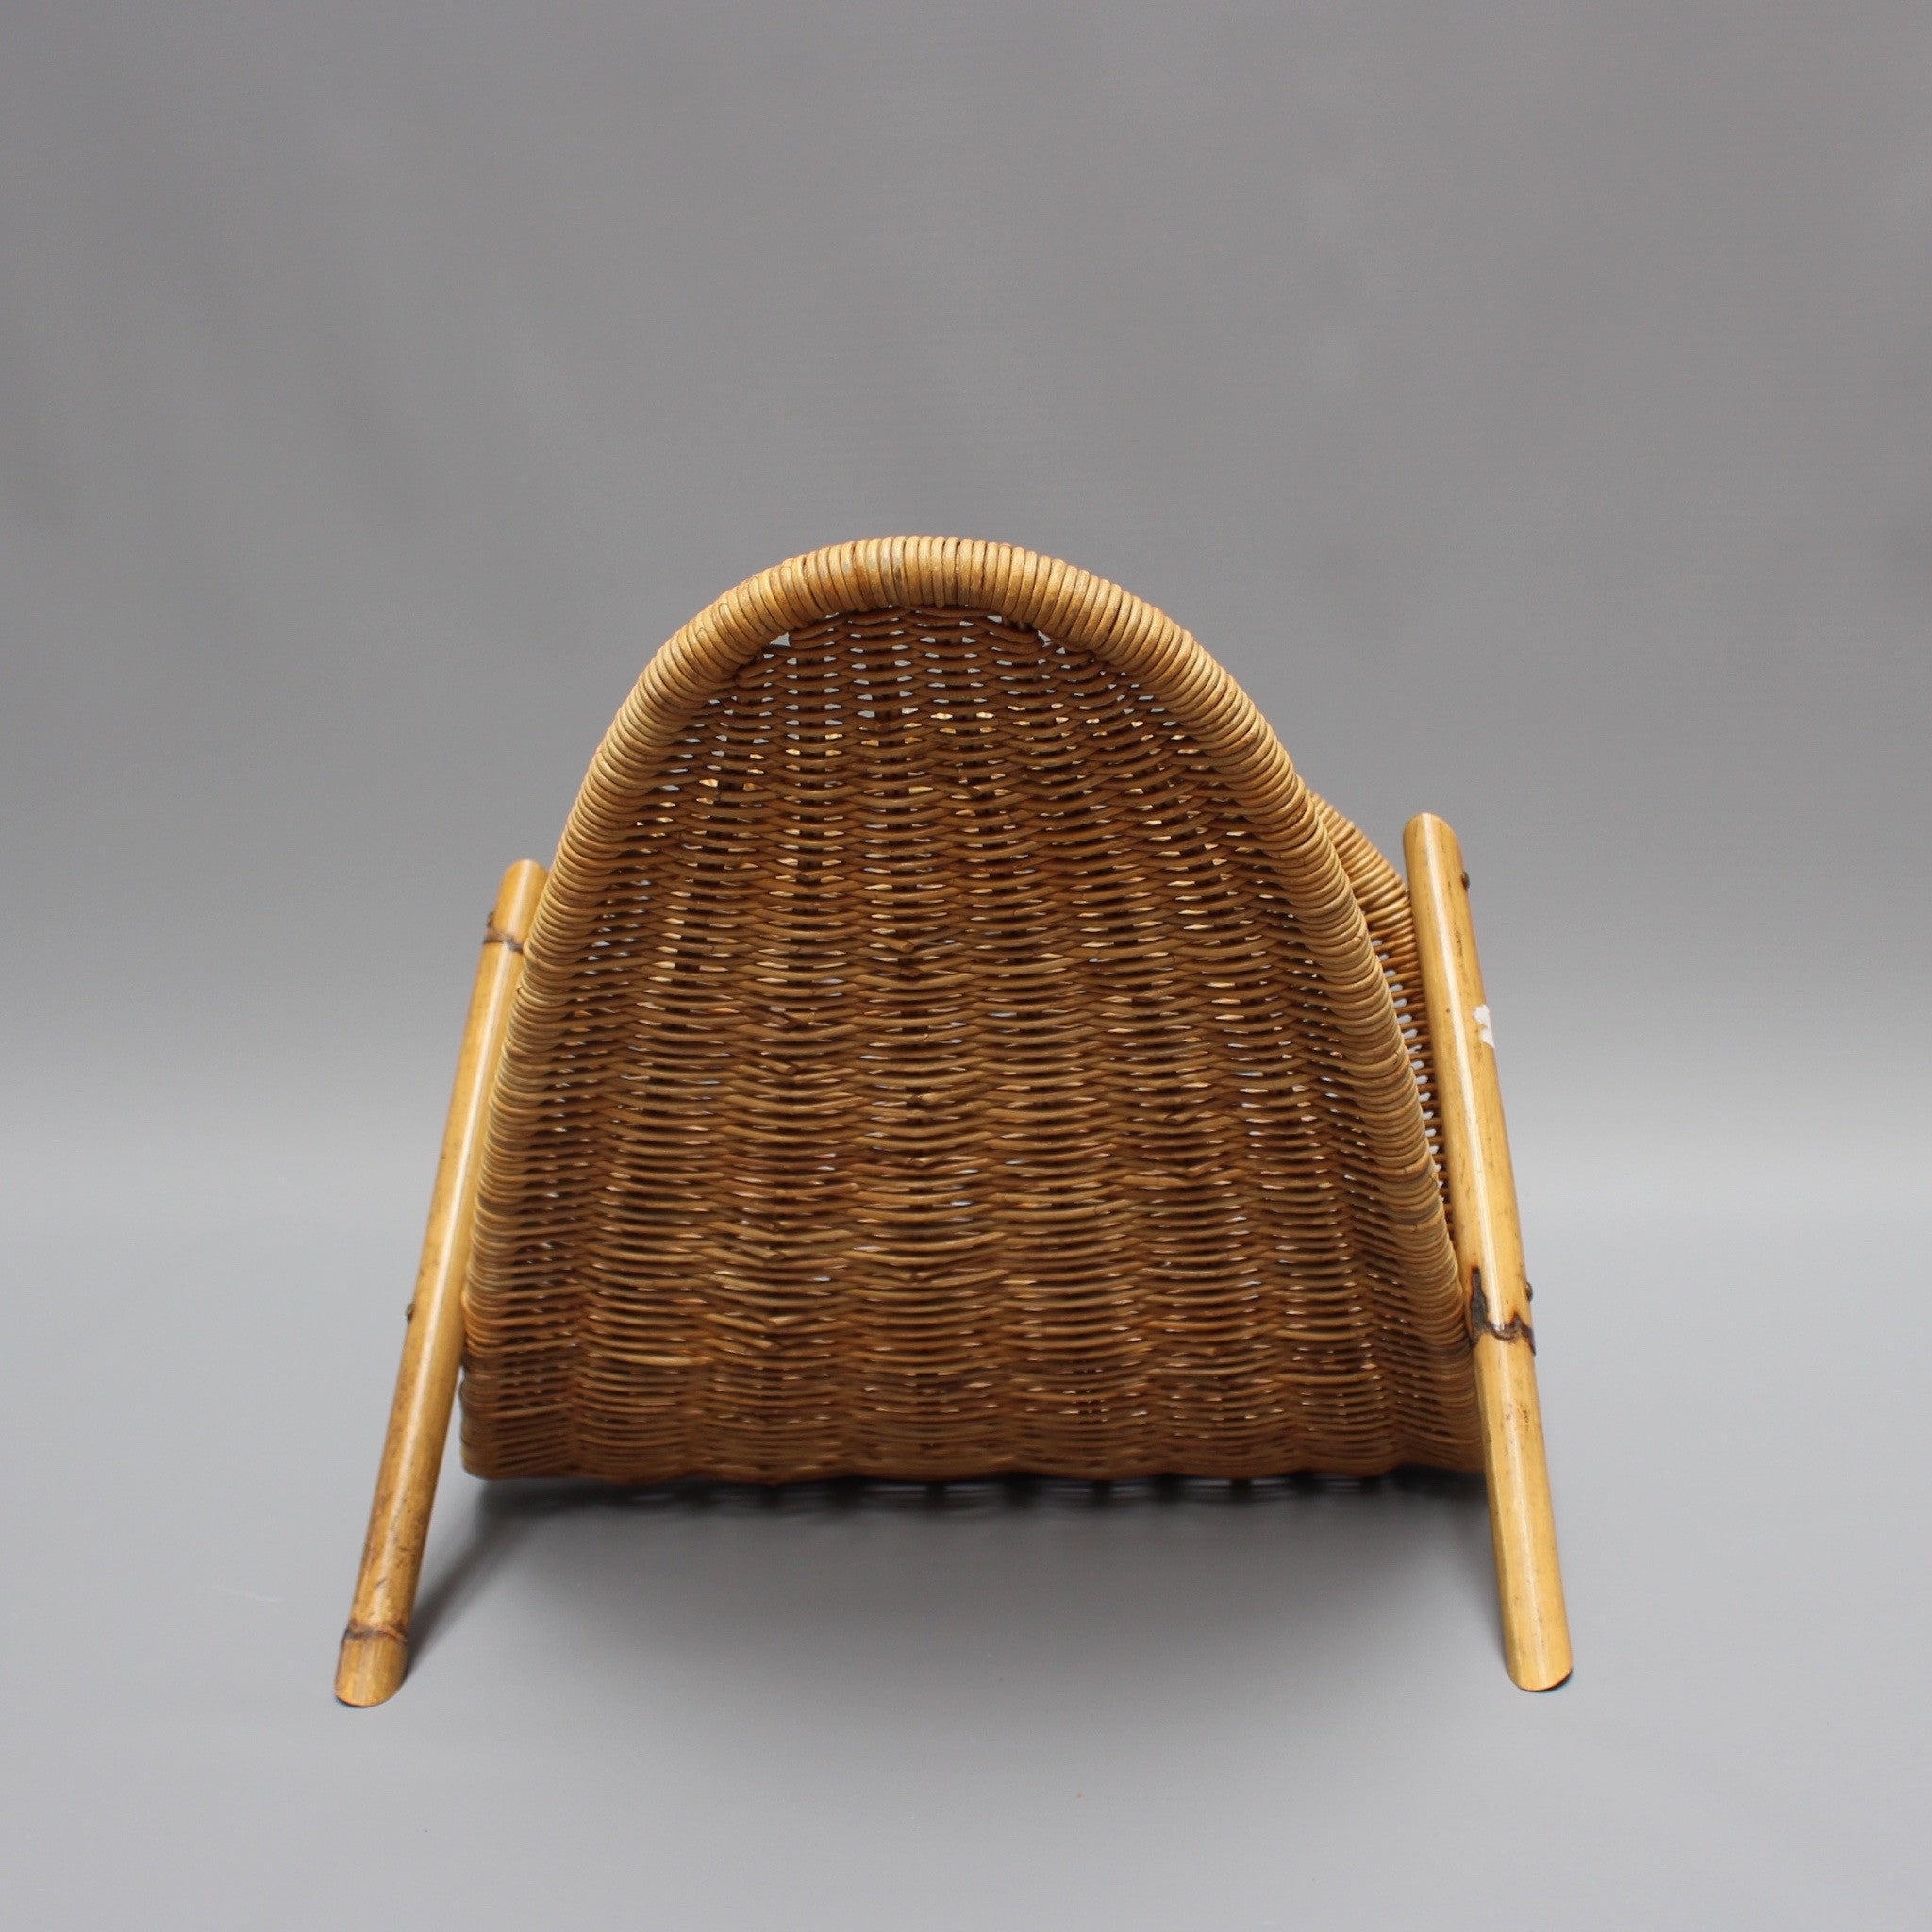 Bamboo and Wicker Vintage Magazine Rack (c. 1960s)